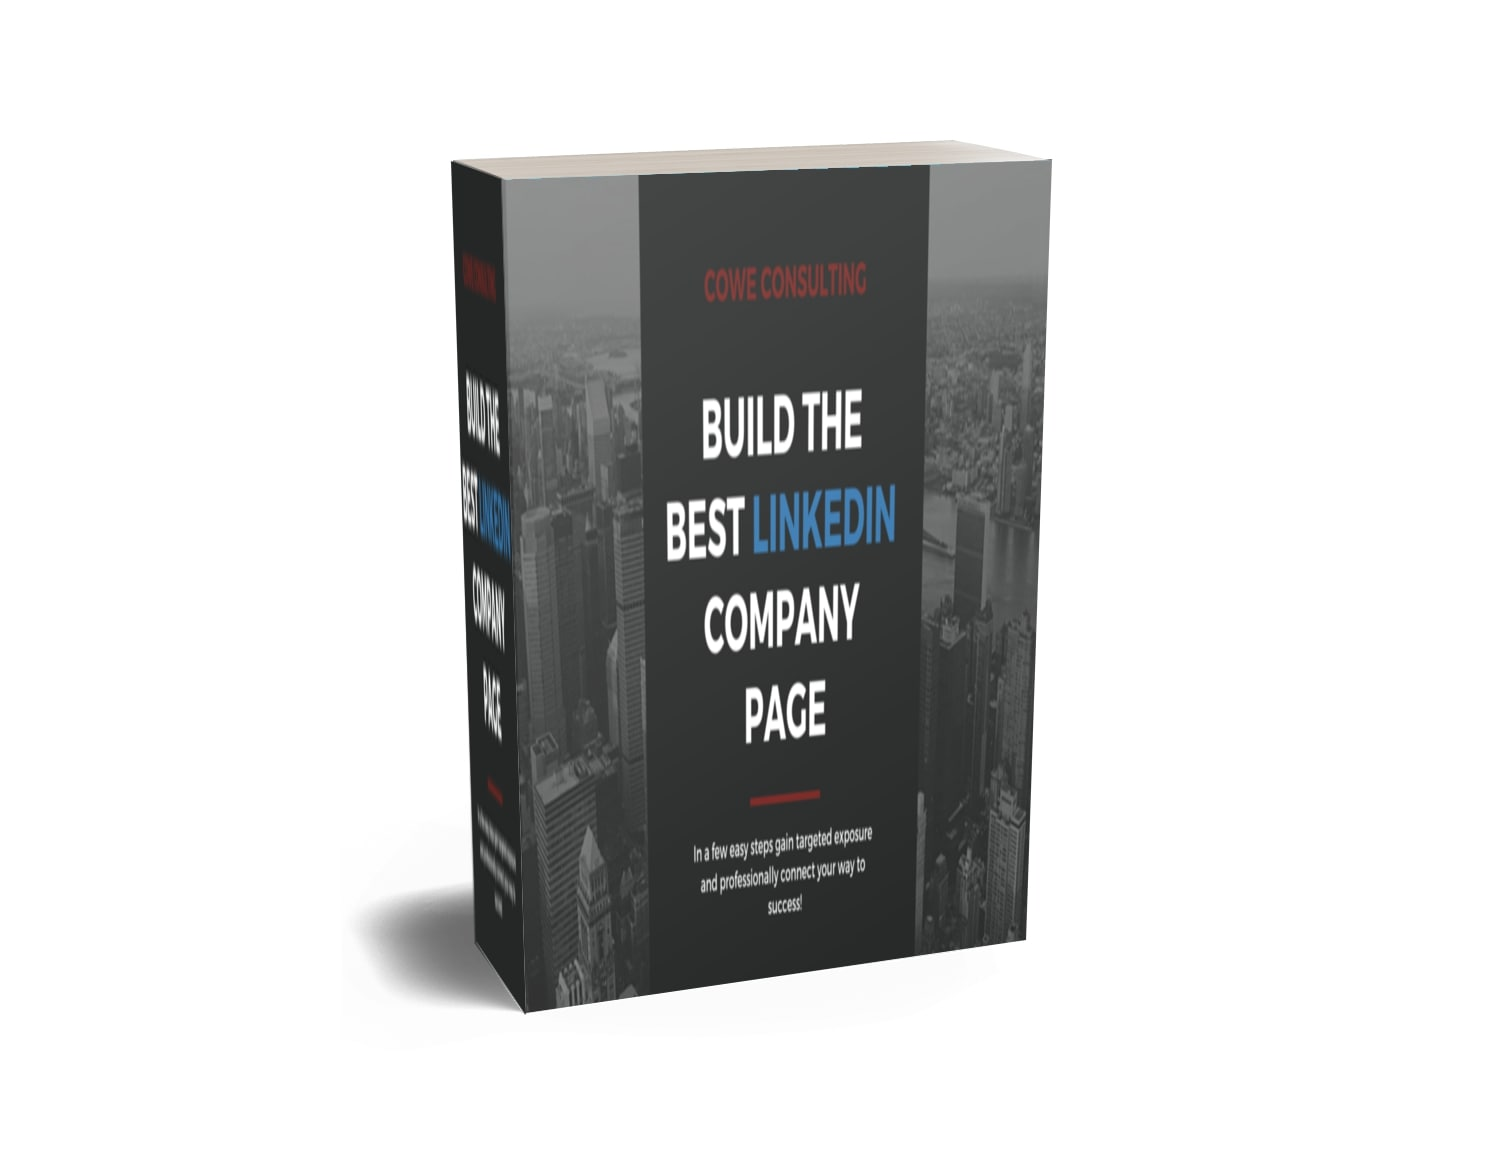 Ultimate Guide to Building the Best LinkedIn Company Page